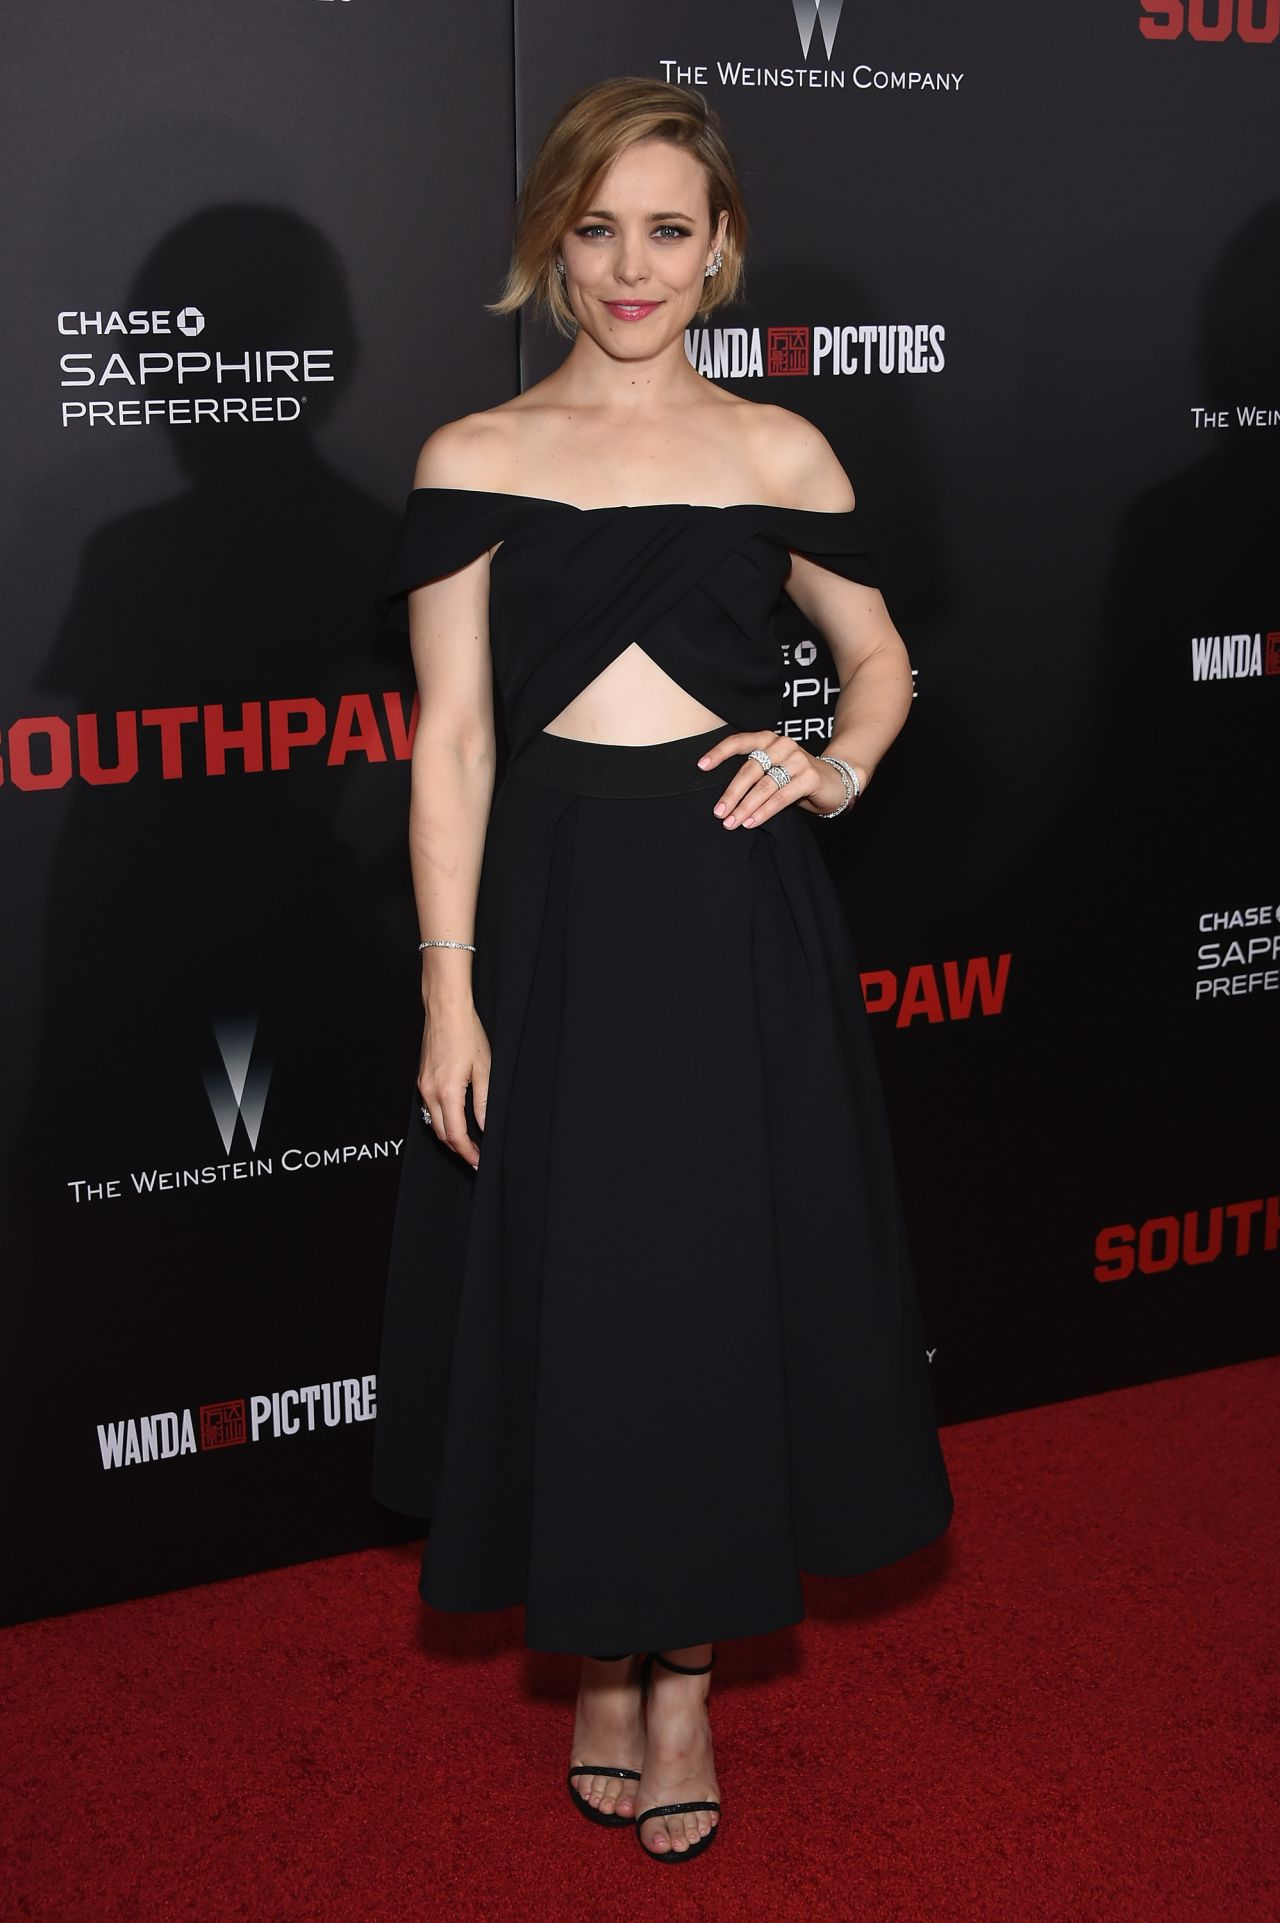 rachel-mcadams-southpaw-premiere-in-new-york-city_1